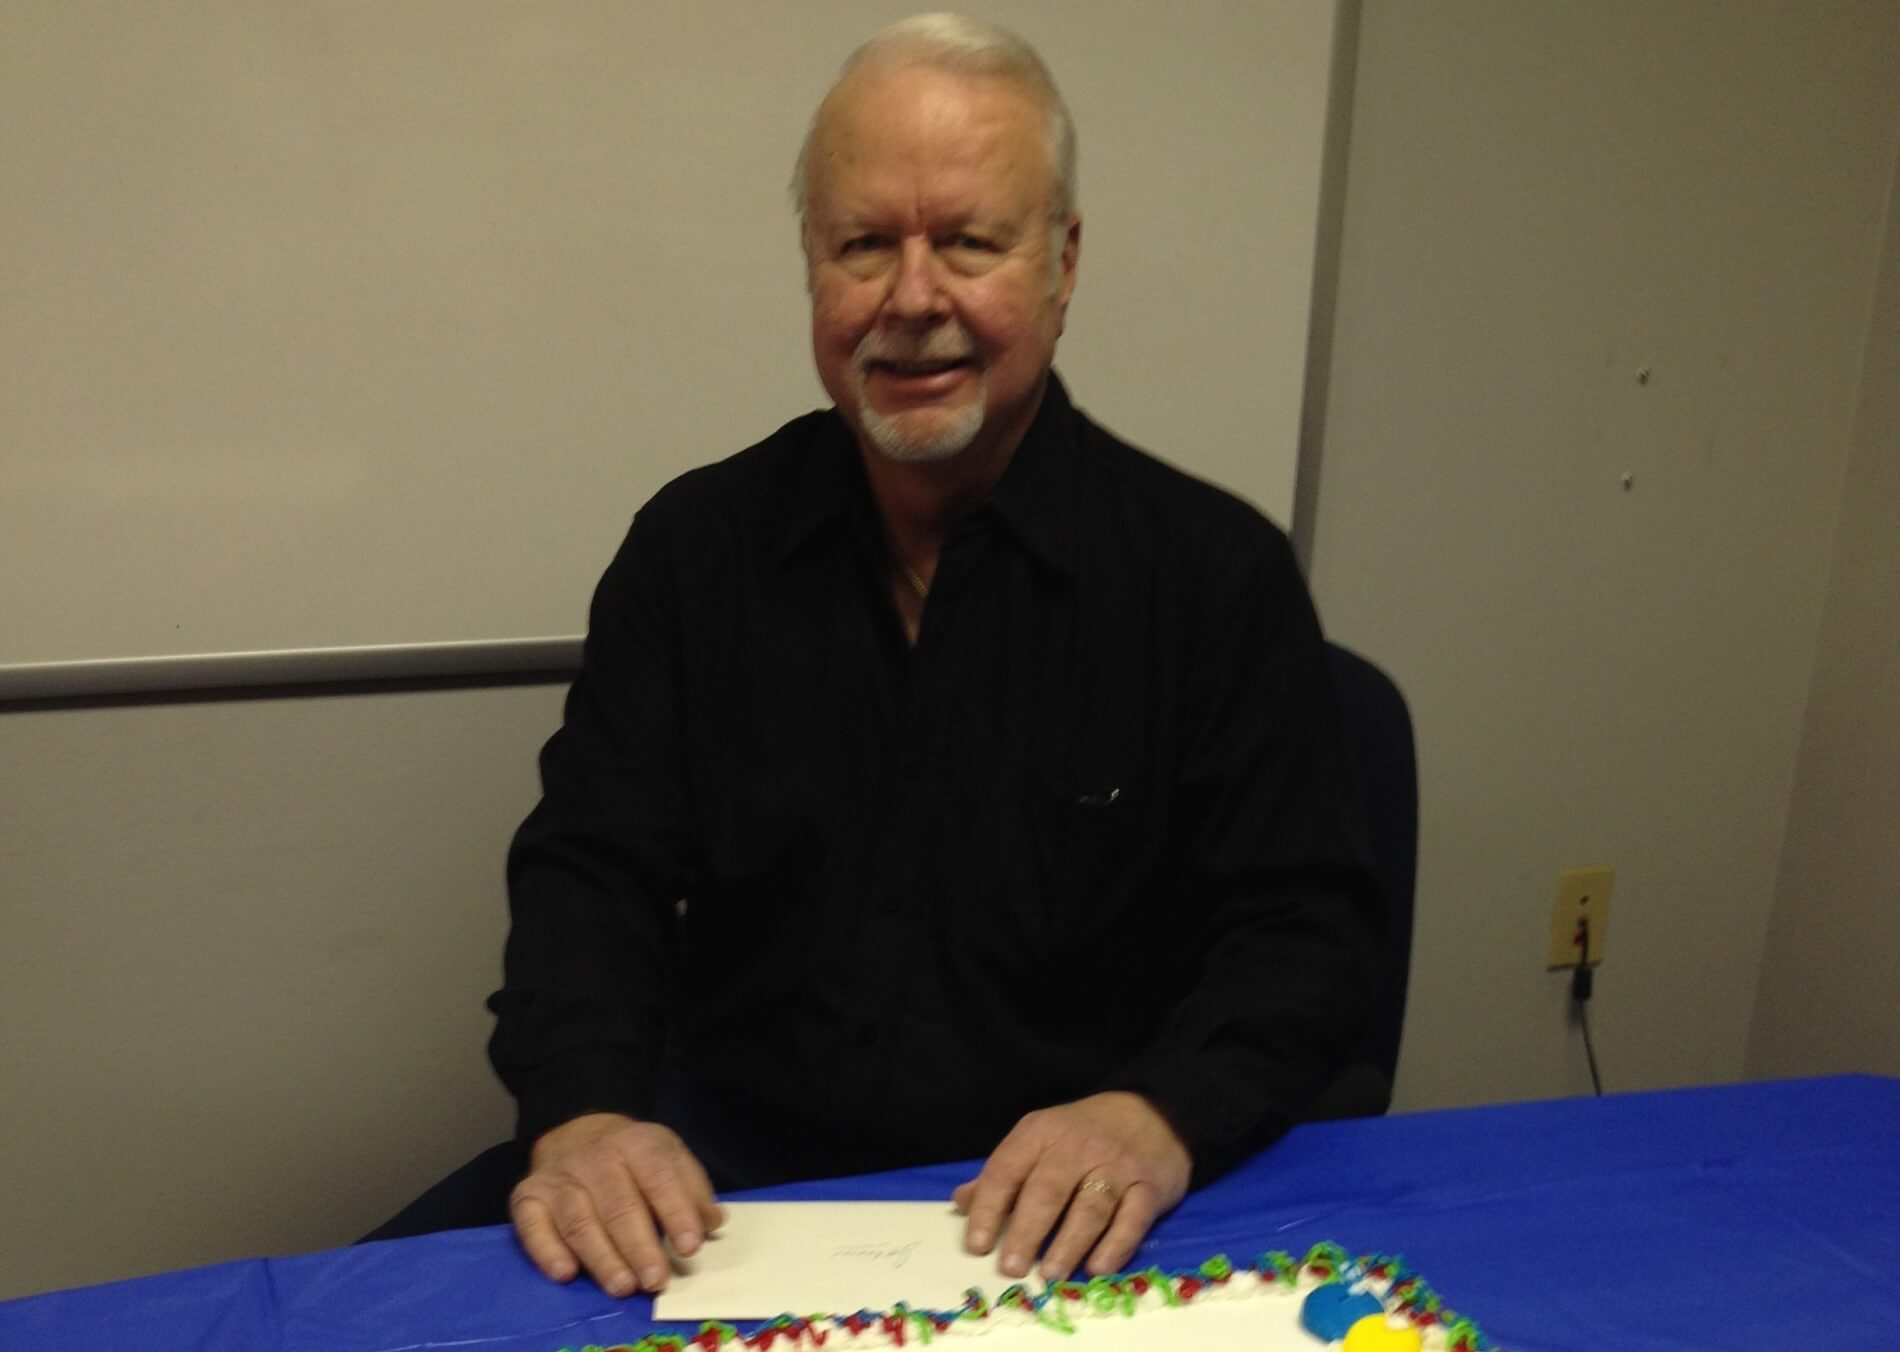 McElroy Metal celebrates with Hoell on retirement